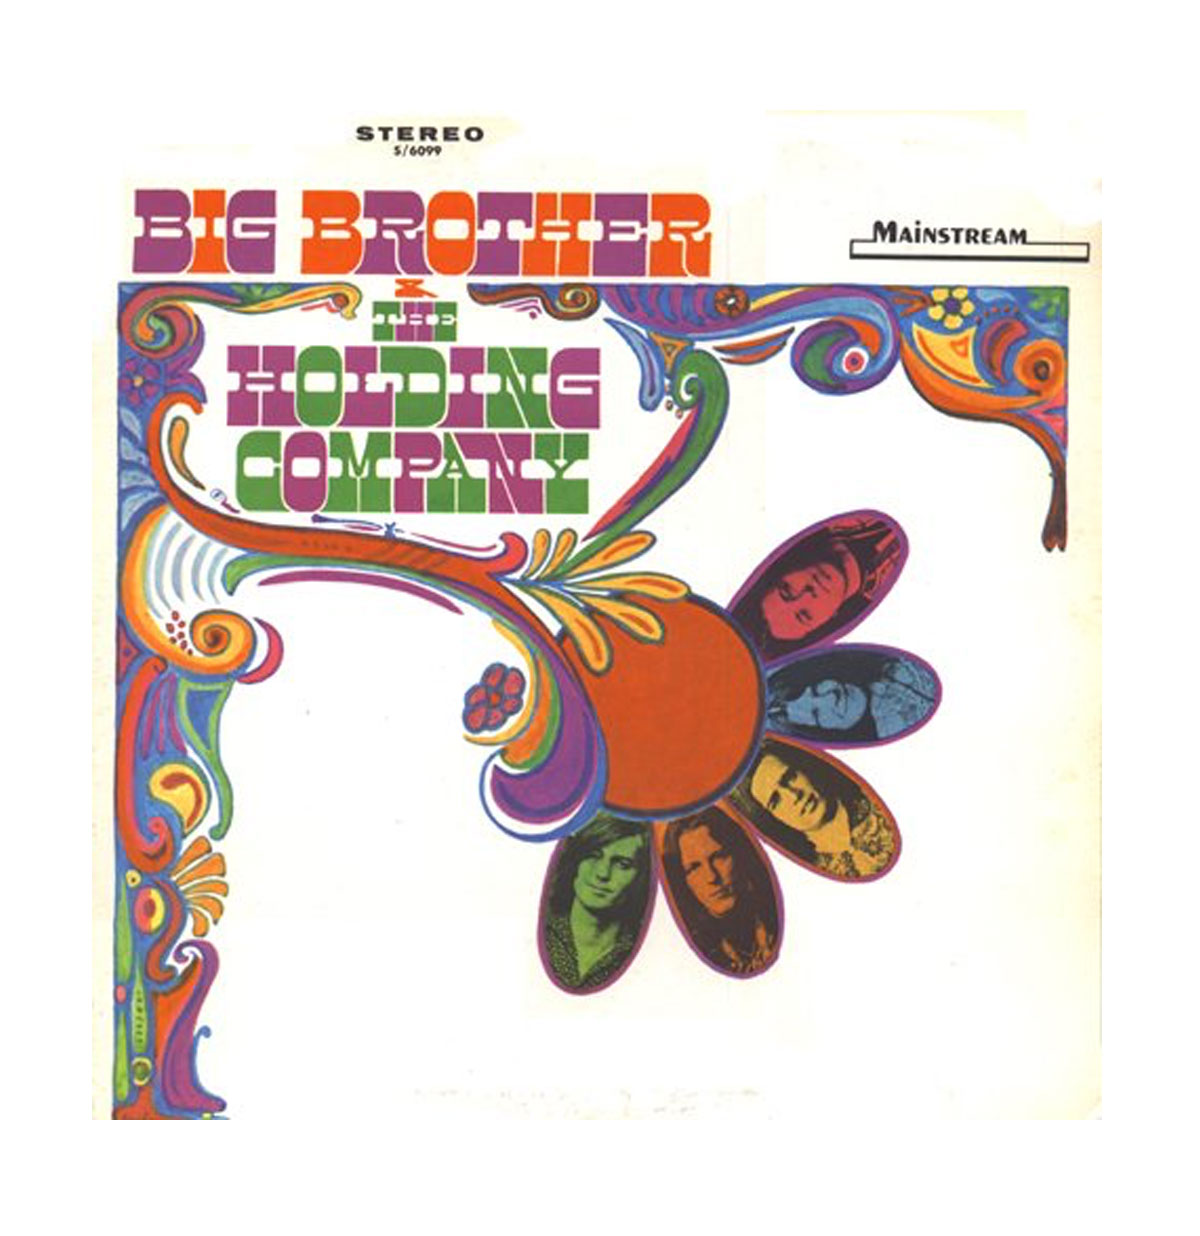 Big Brother and the Holding Company LP - Janis Joplin